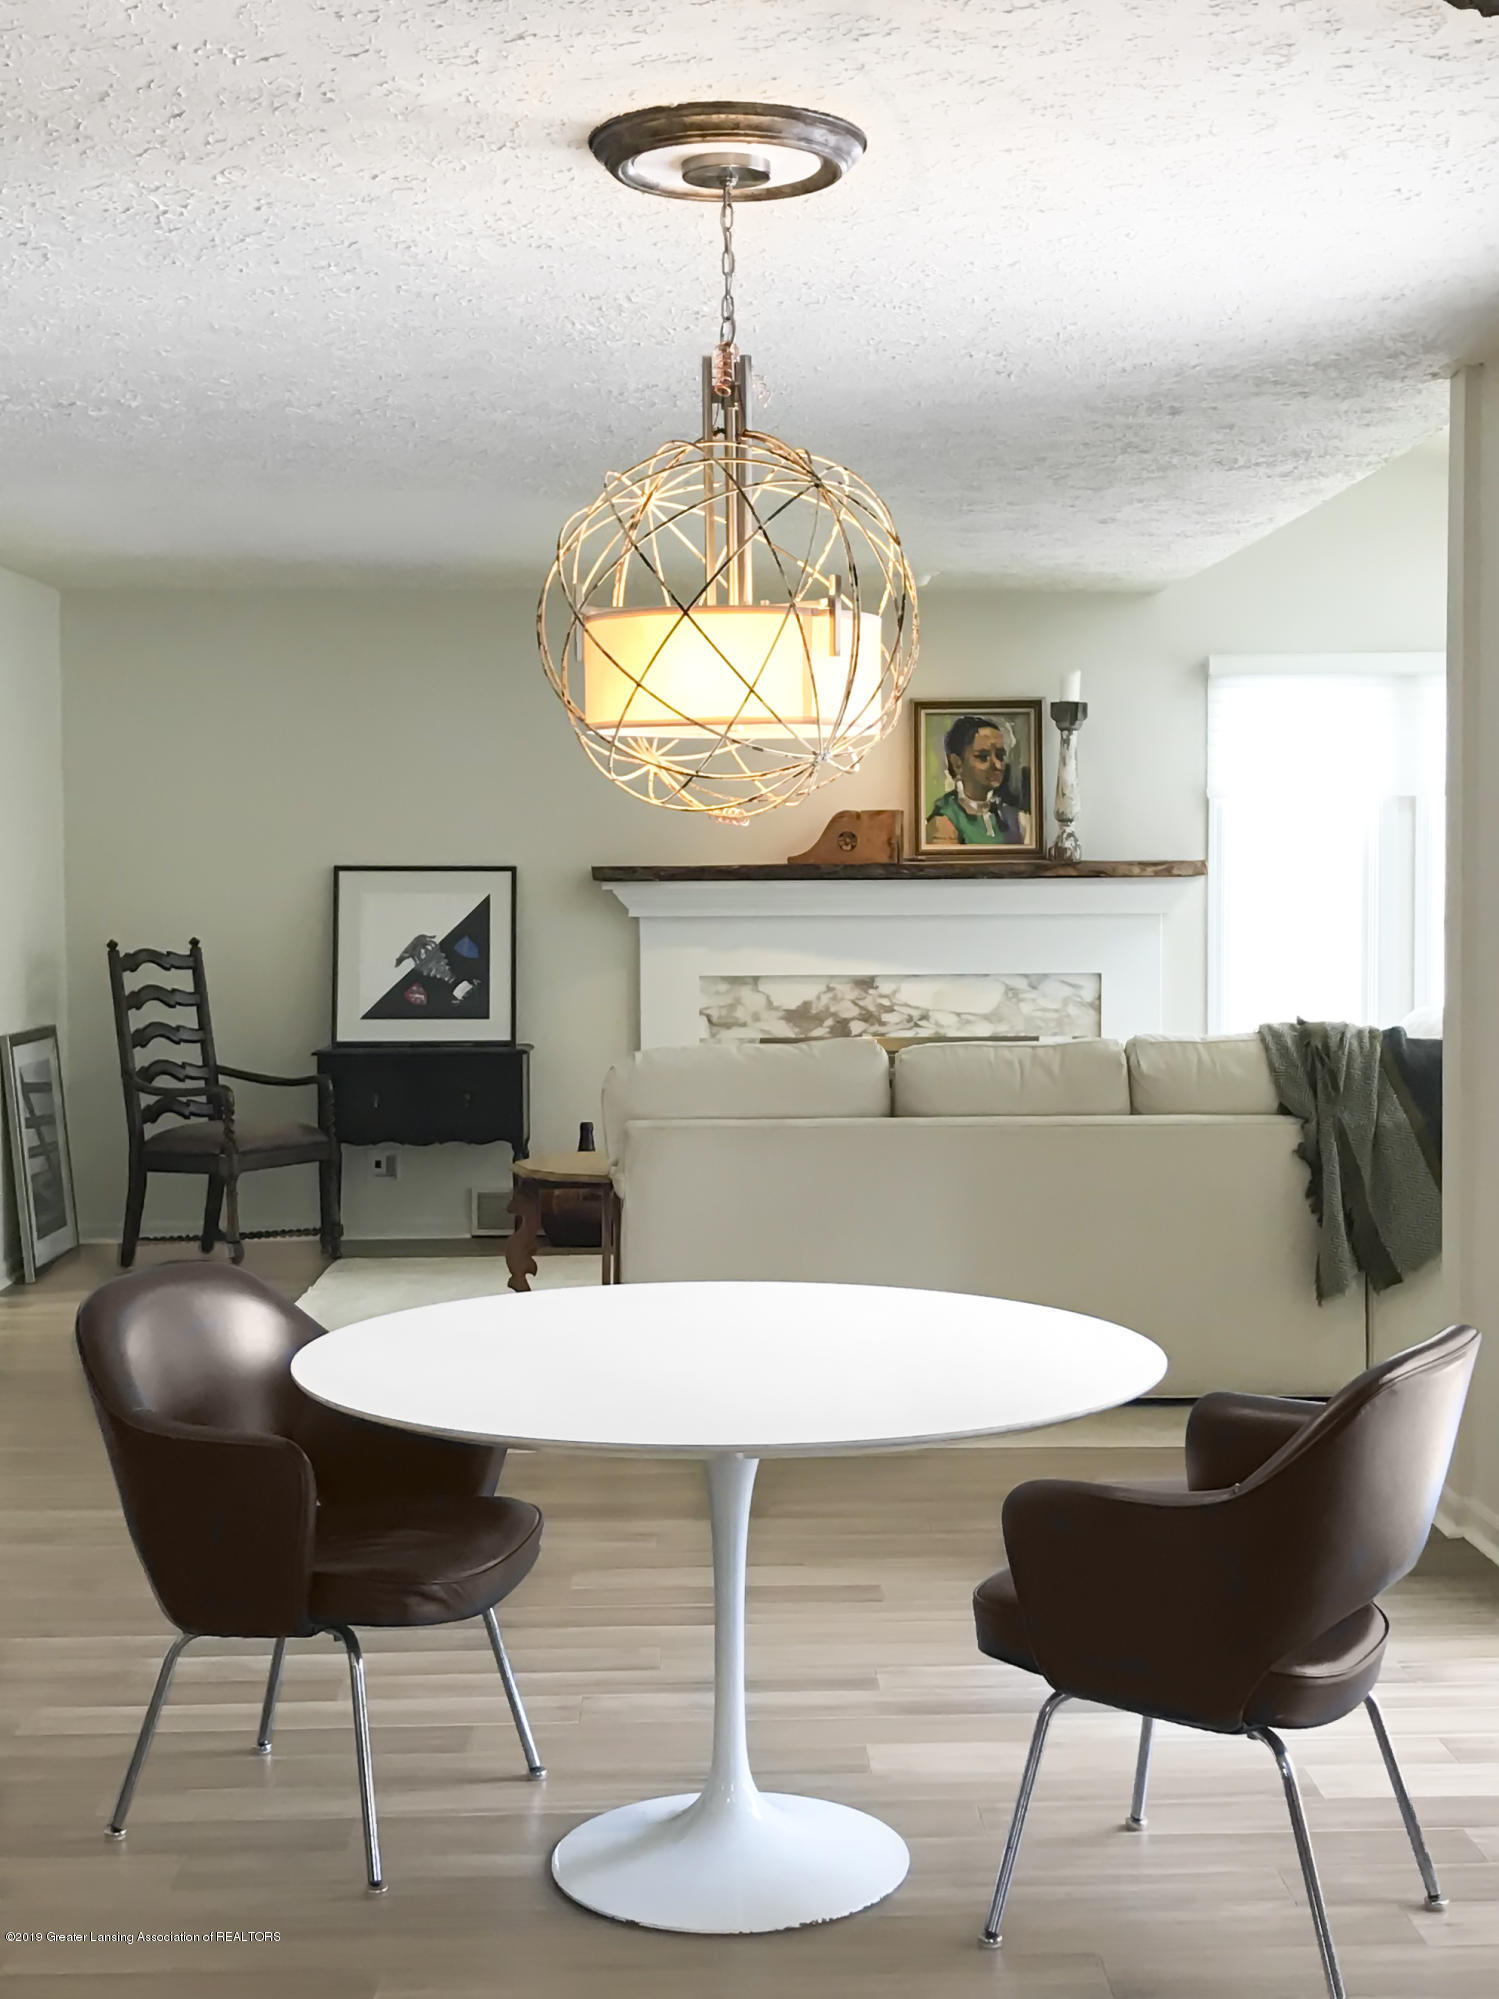 4420 Comanche Dr - Dining Room - 7